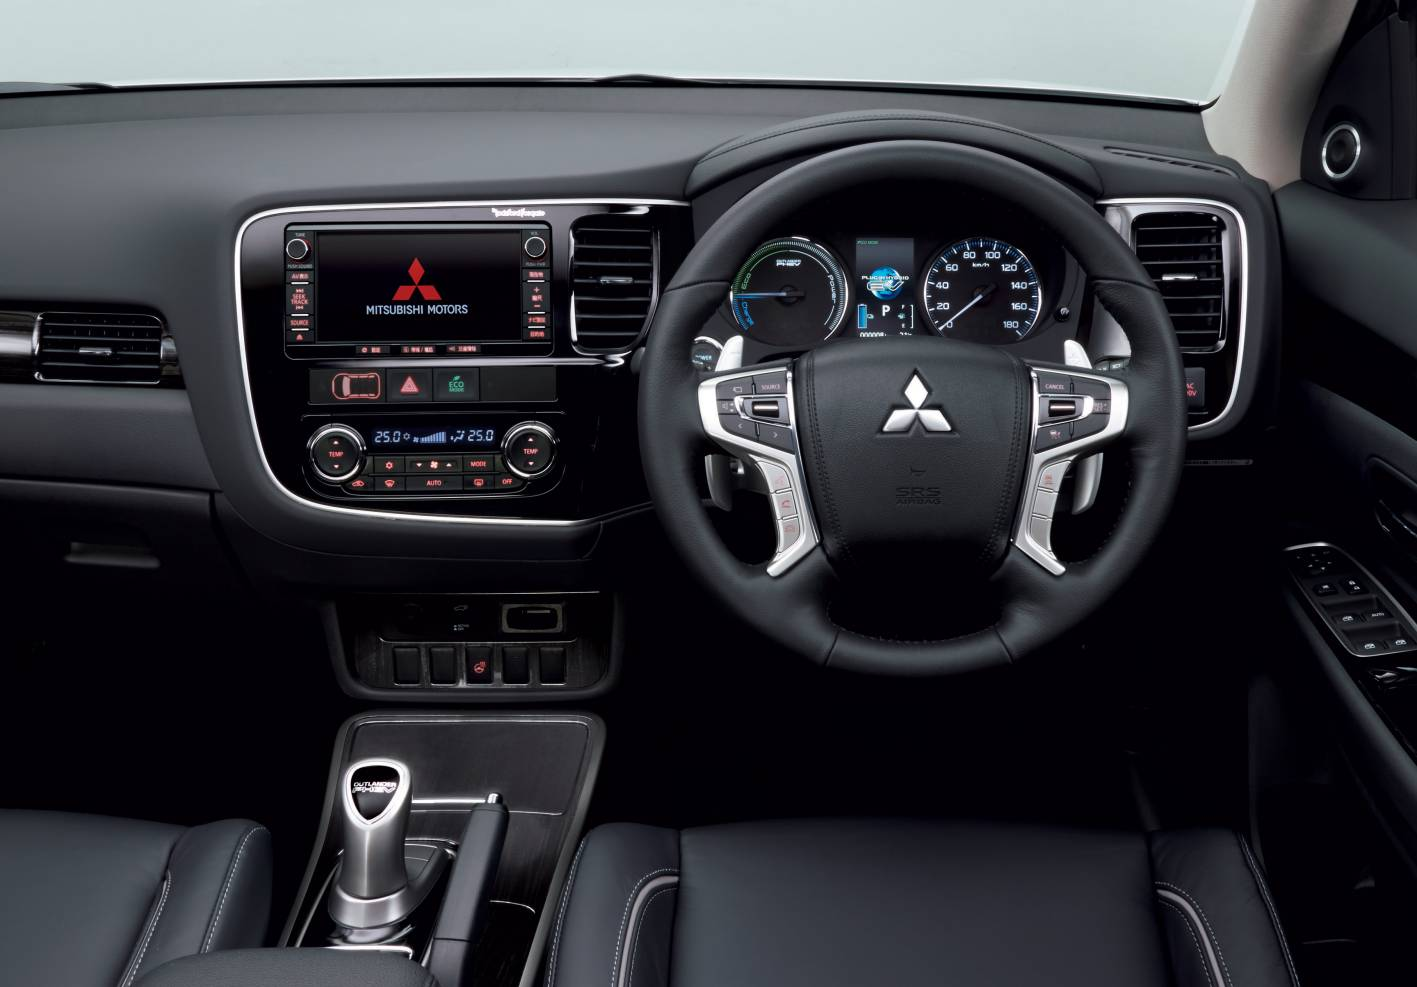 2015 mitsubishi outlander sport interior car interior design. Black Bedroom Furniture Sets. Home Design Ideas